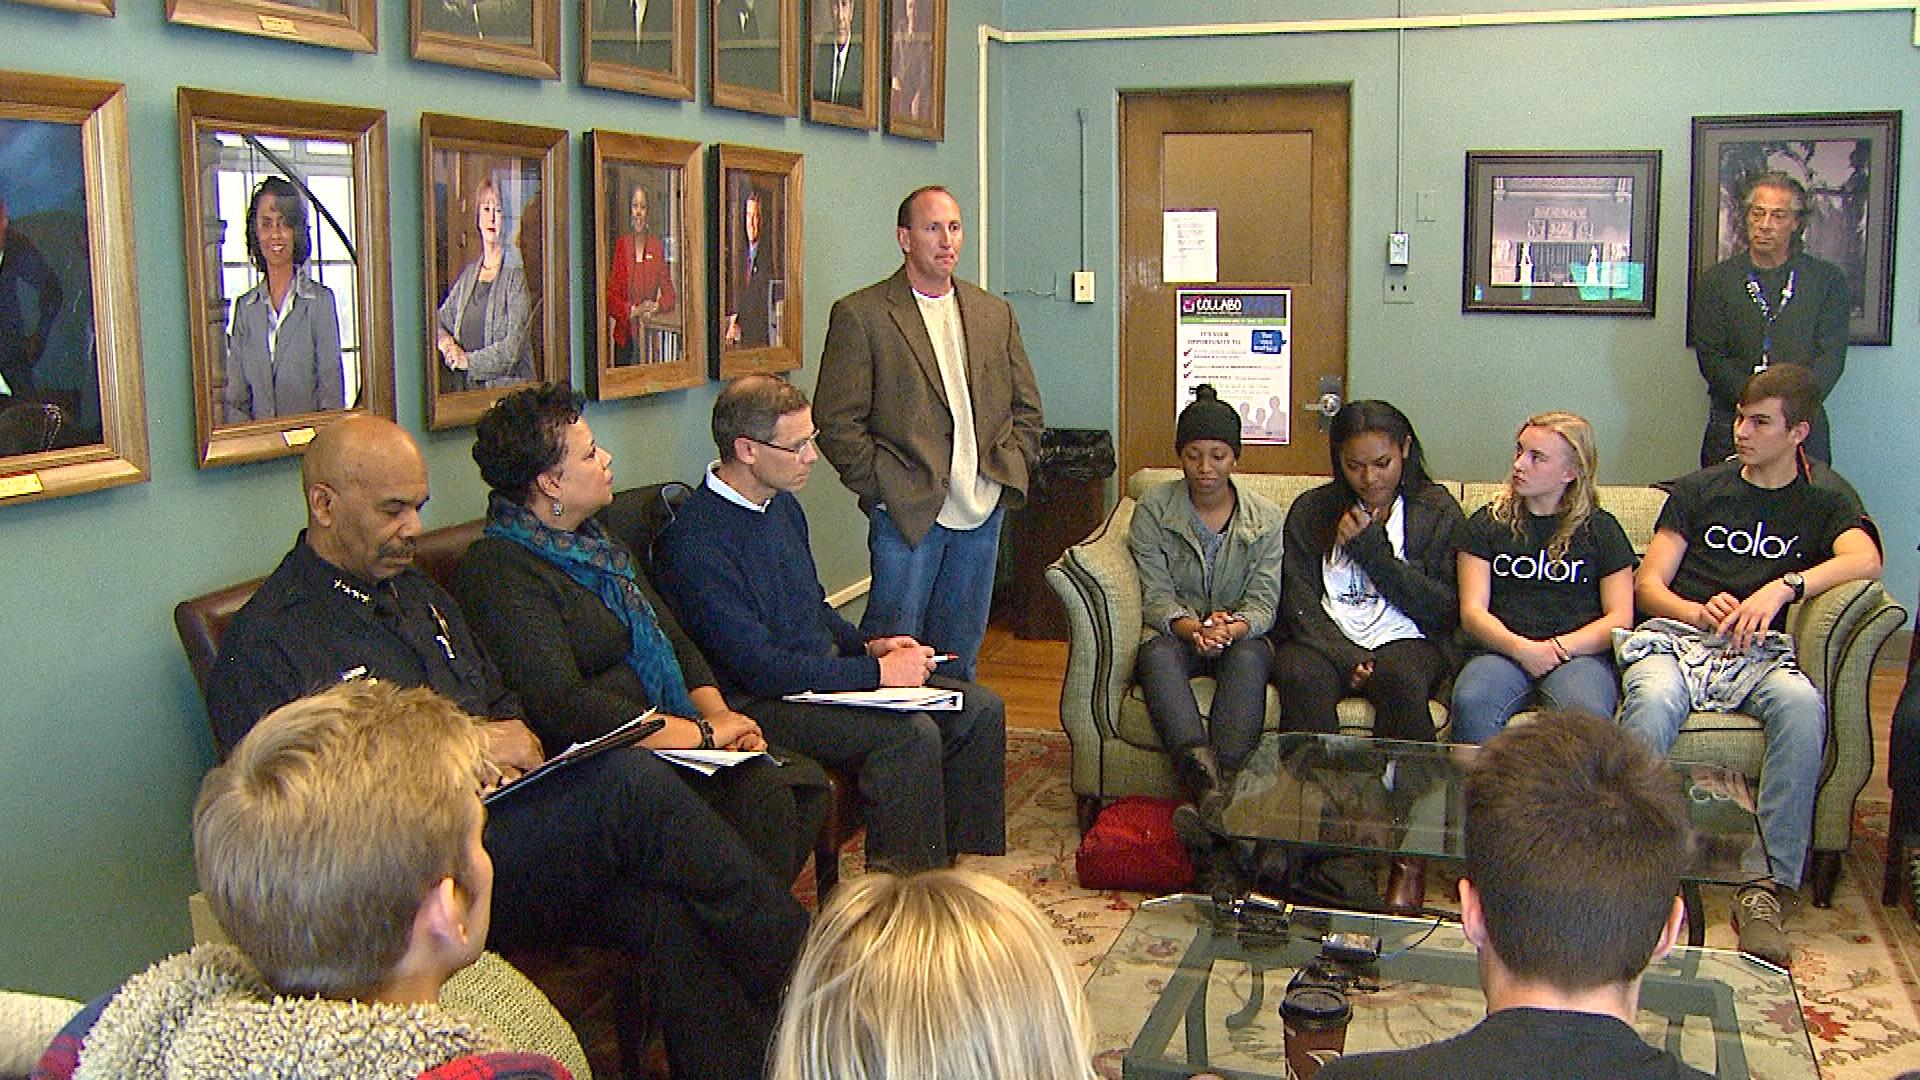 The meeting between students and community leaders on Monday (credit: CBS)